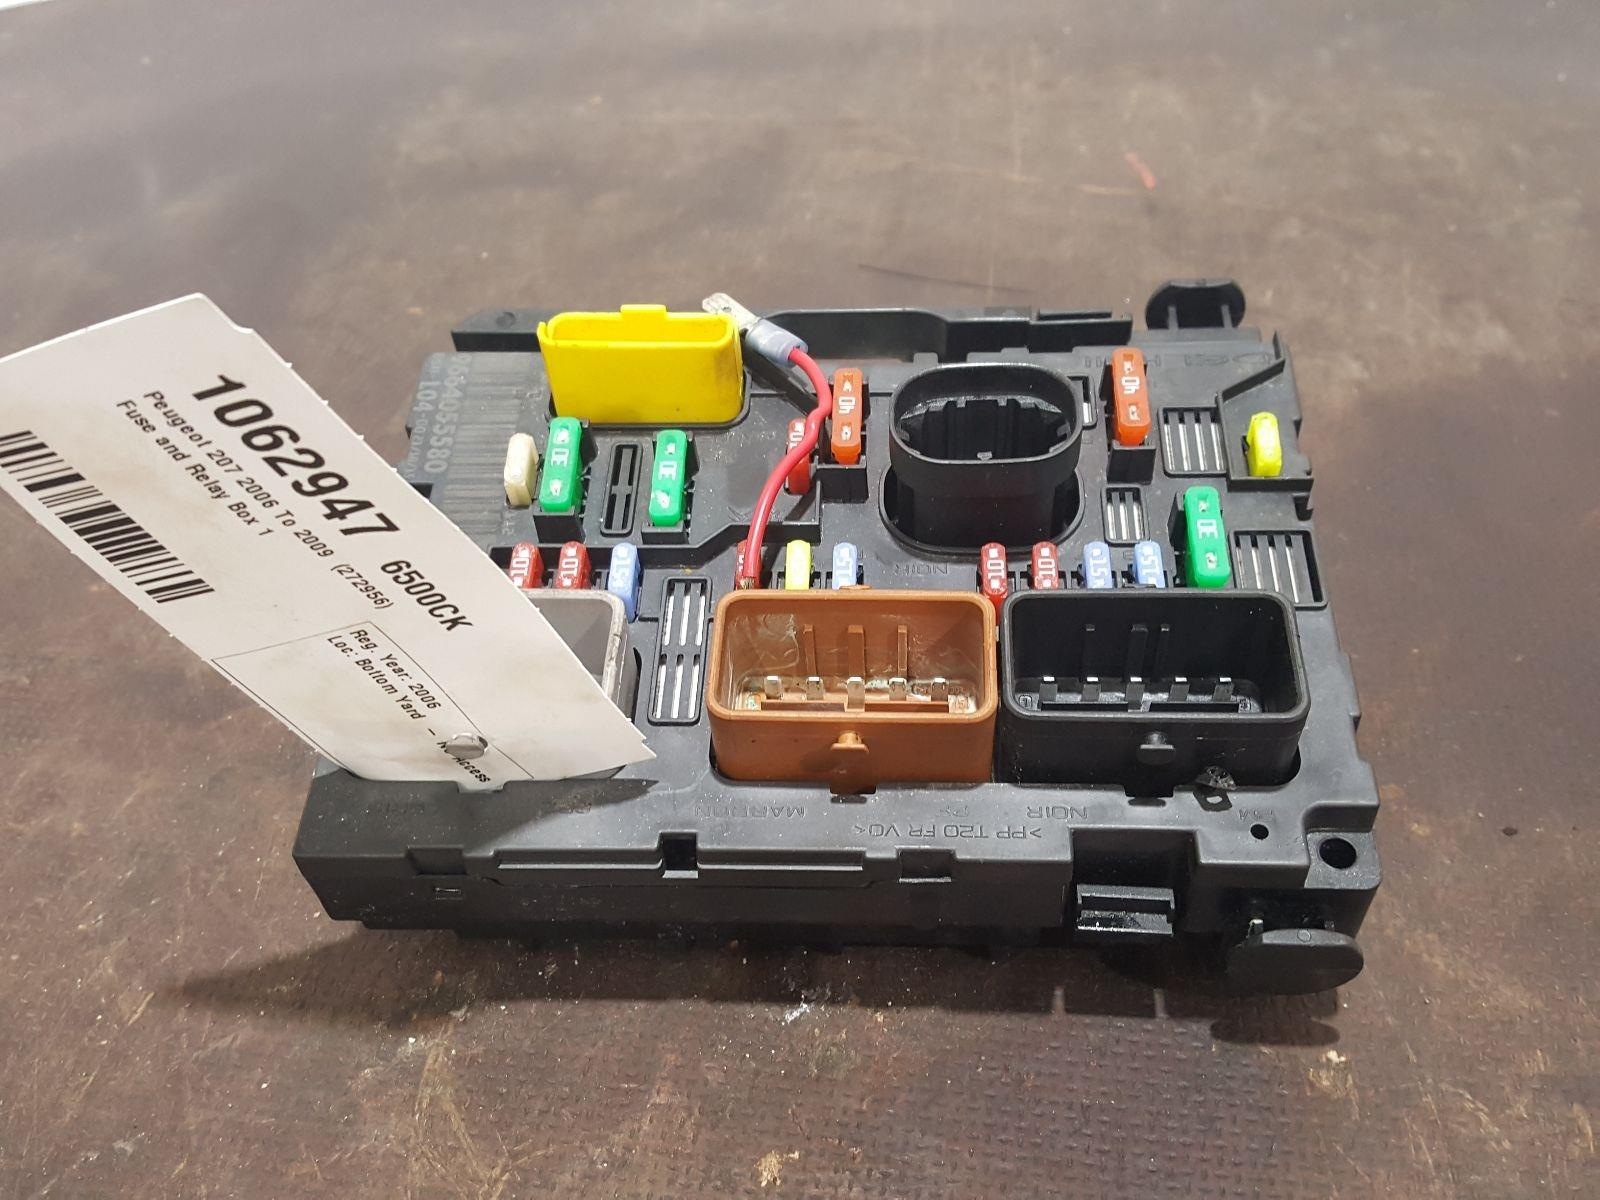 Peugeot 207 Fuse Box 2009 Detailed Schematics Diagram 206 Ebay 2006 To S A C And Relay 1 Used Spare